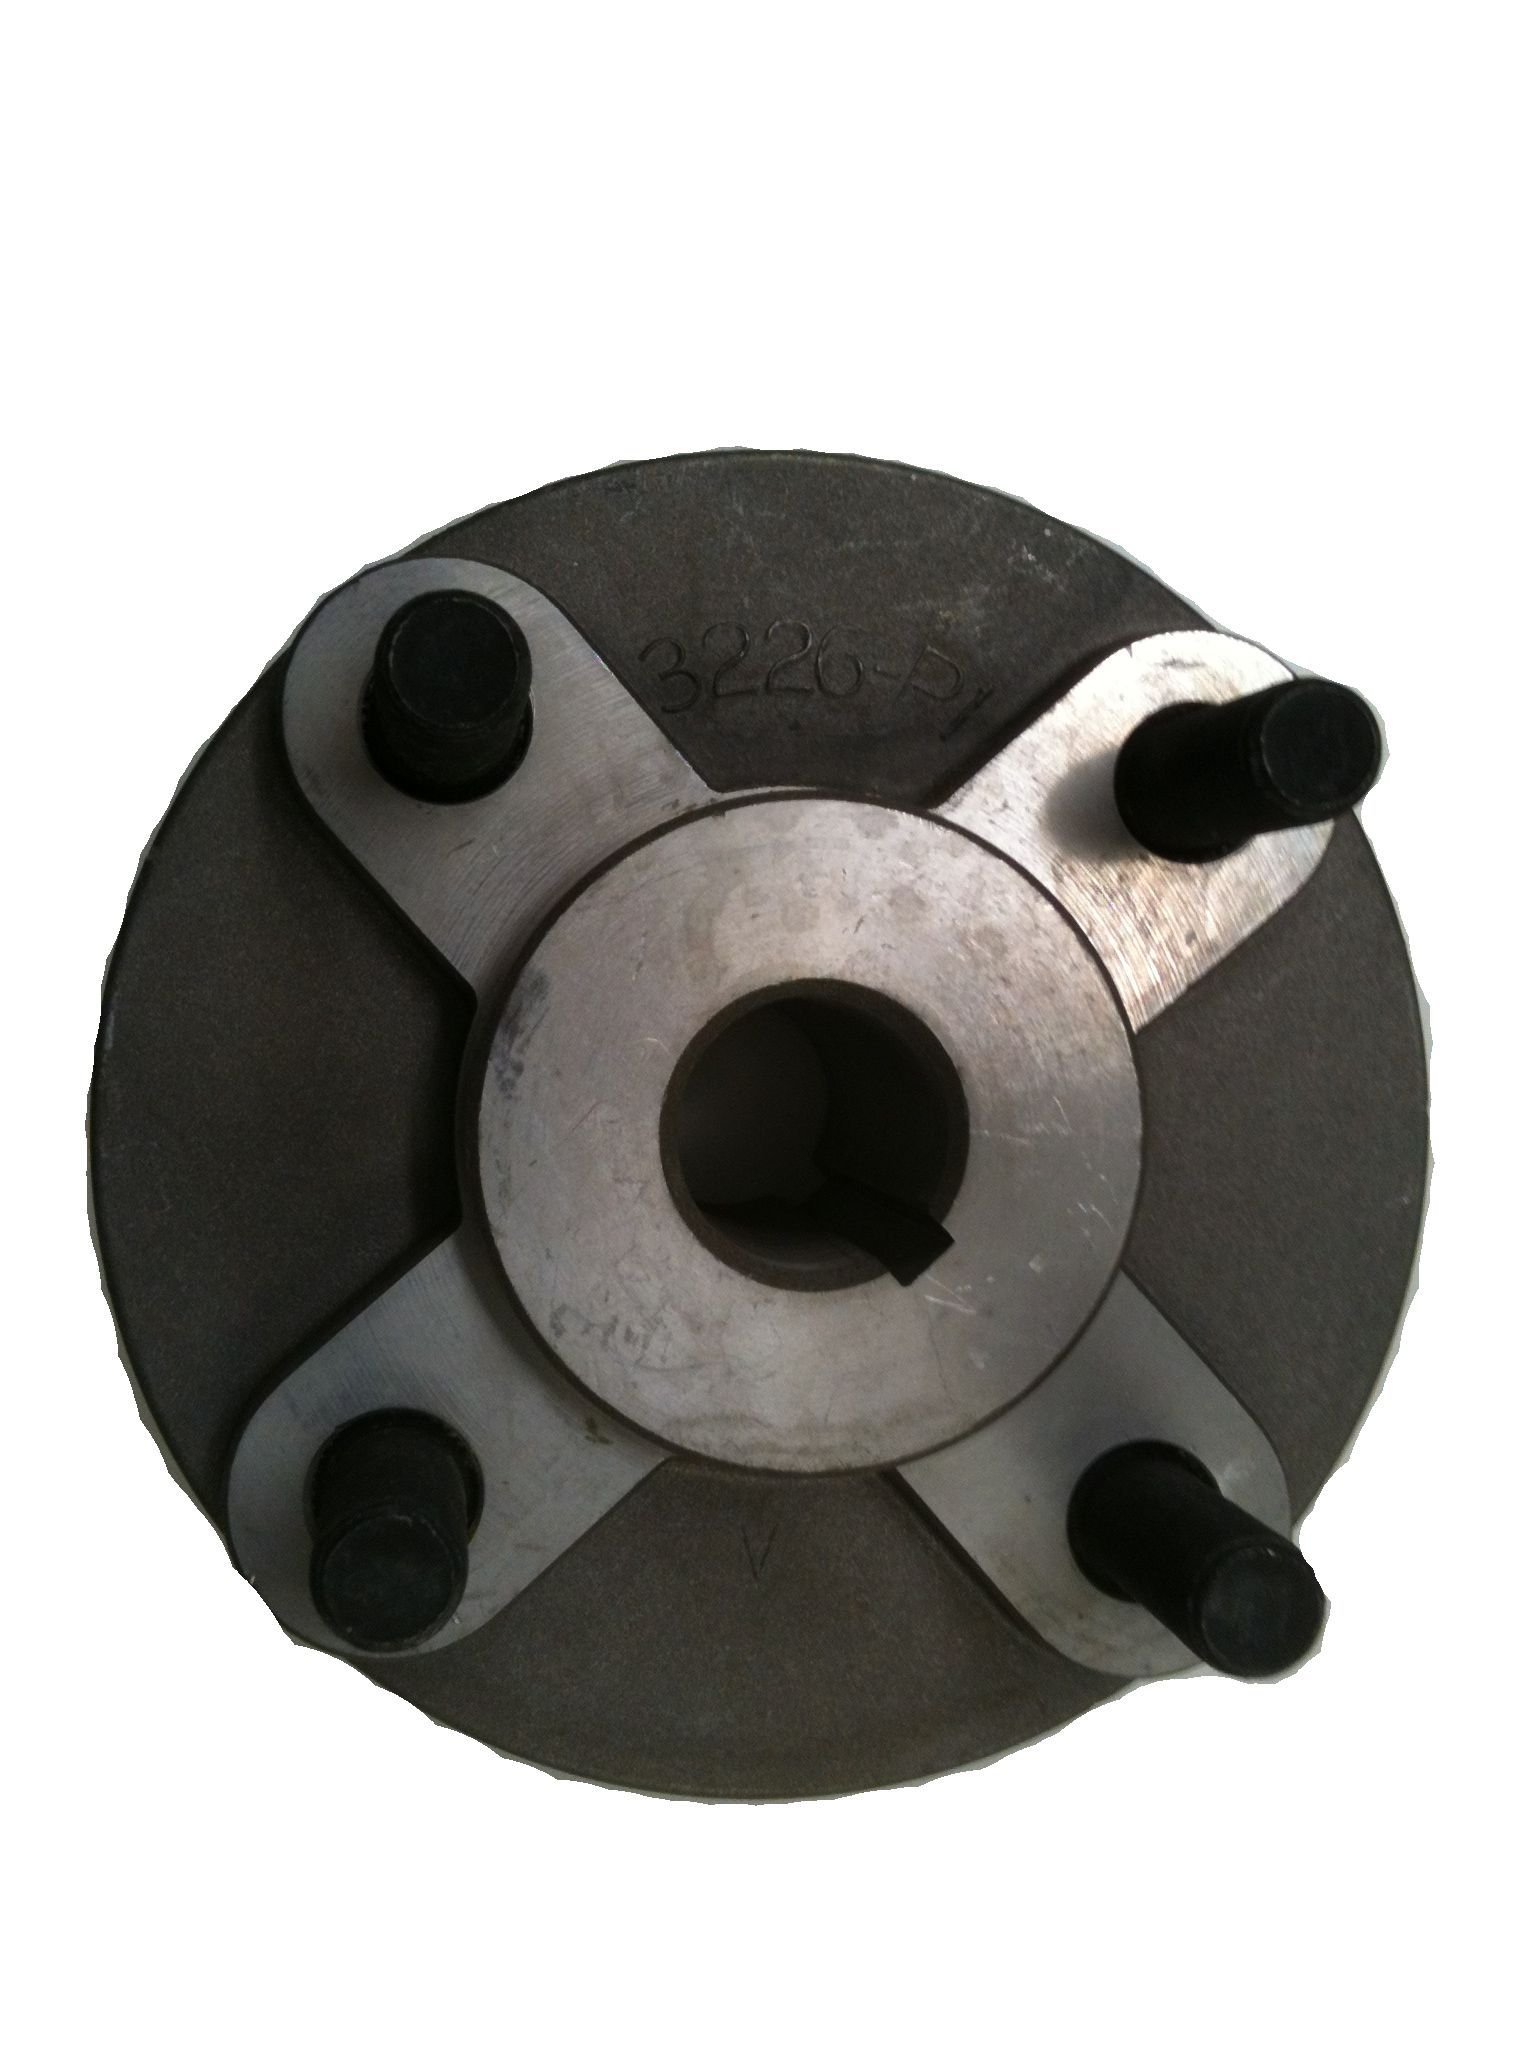 AX11-064 - Aluminum Keyed Rear Hub